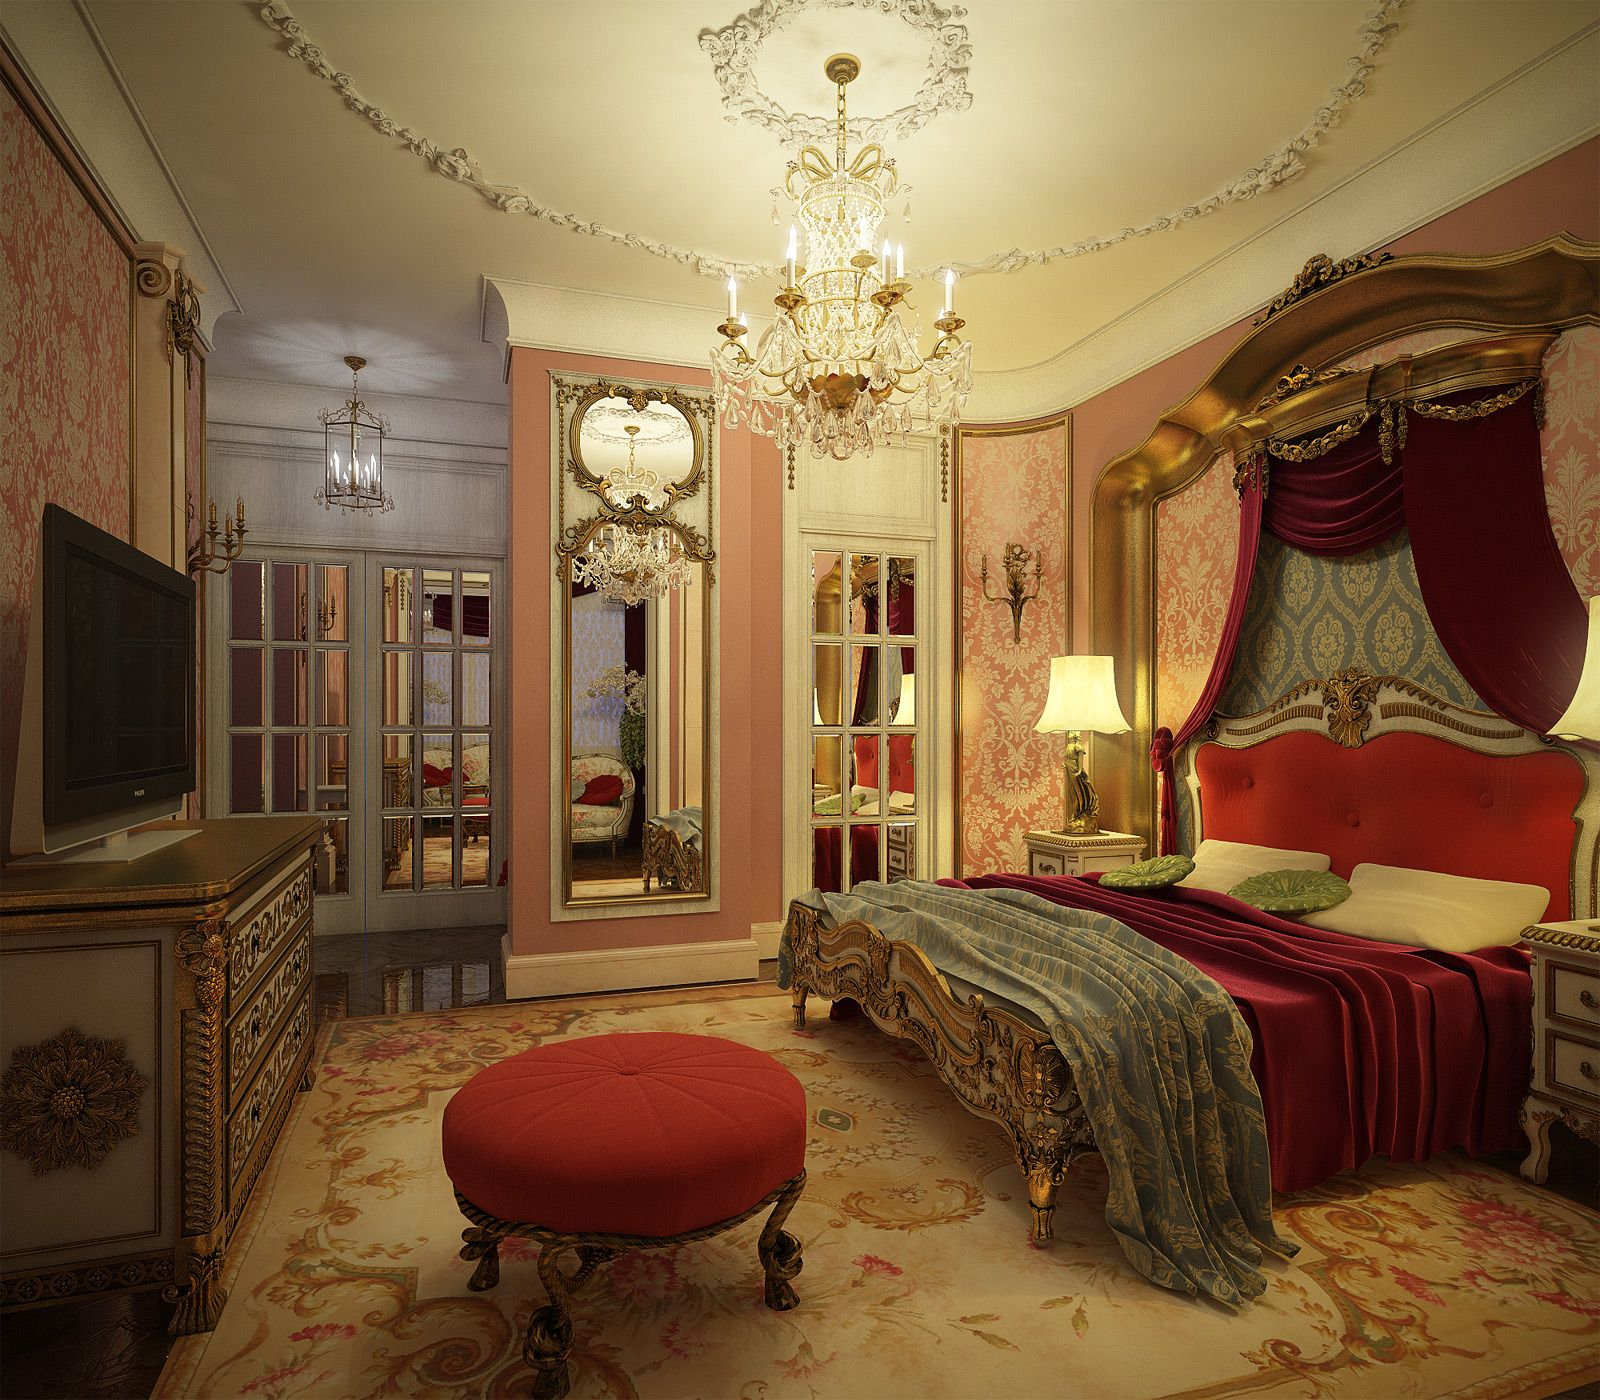 The most amazing bedroom i have ever seen opulent bedroom Romantic bedrooms com